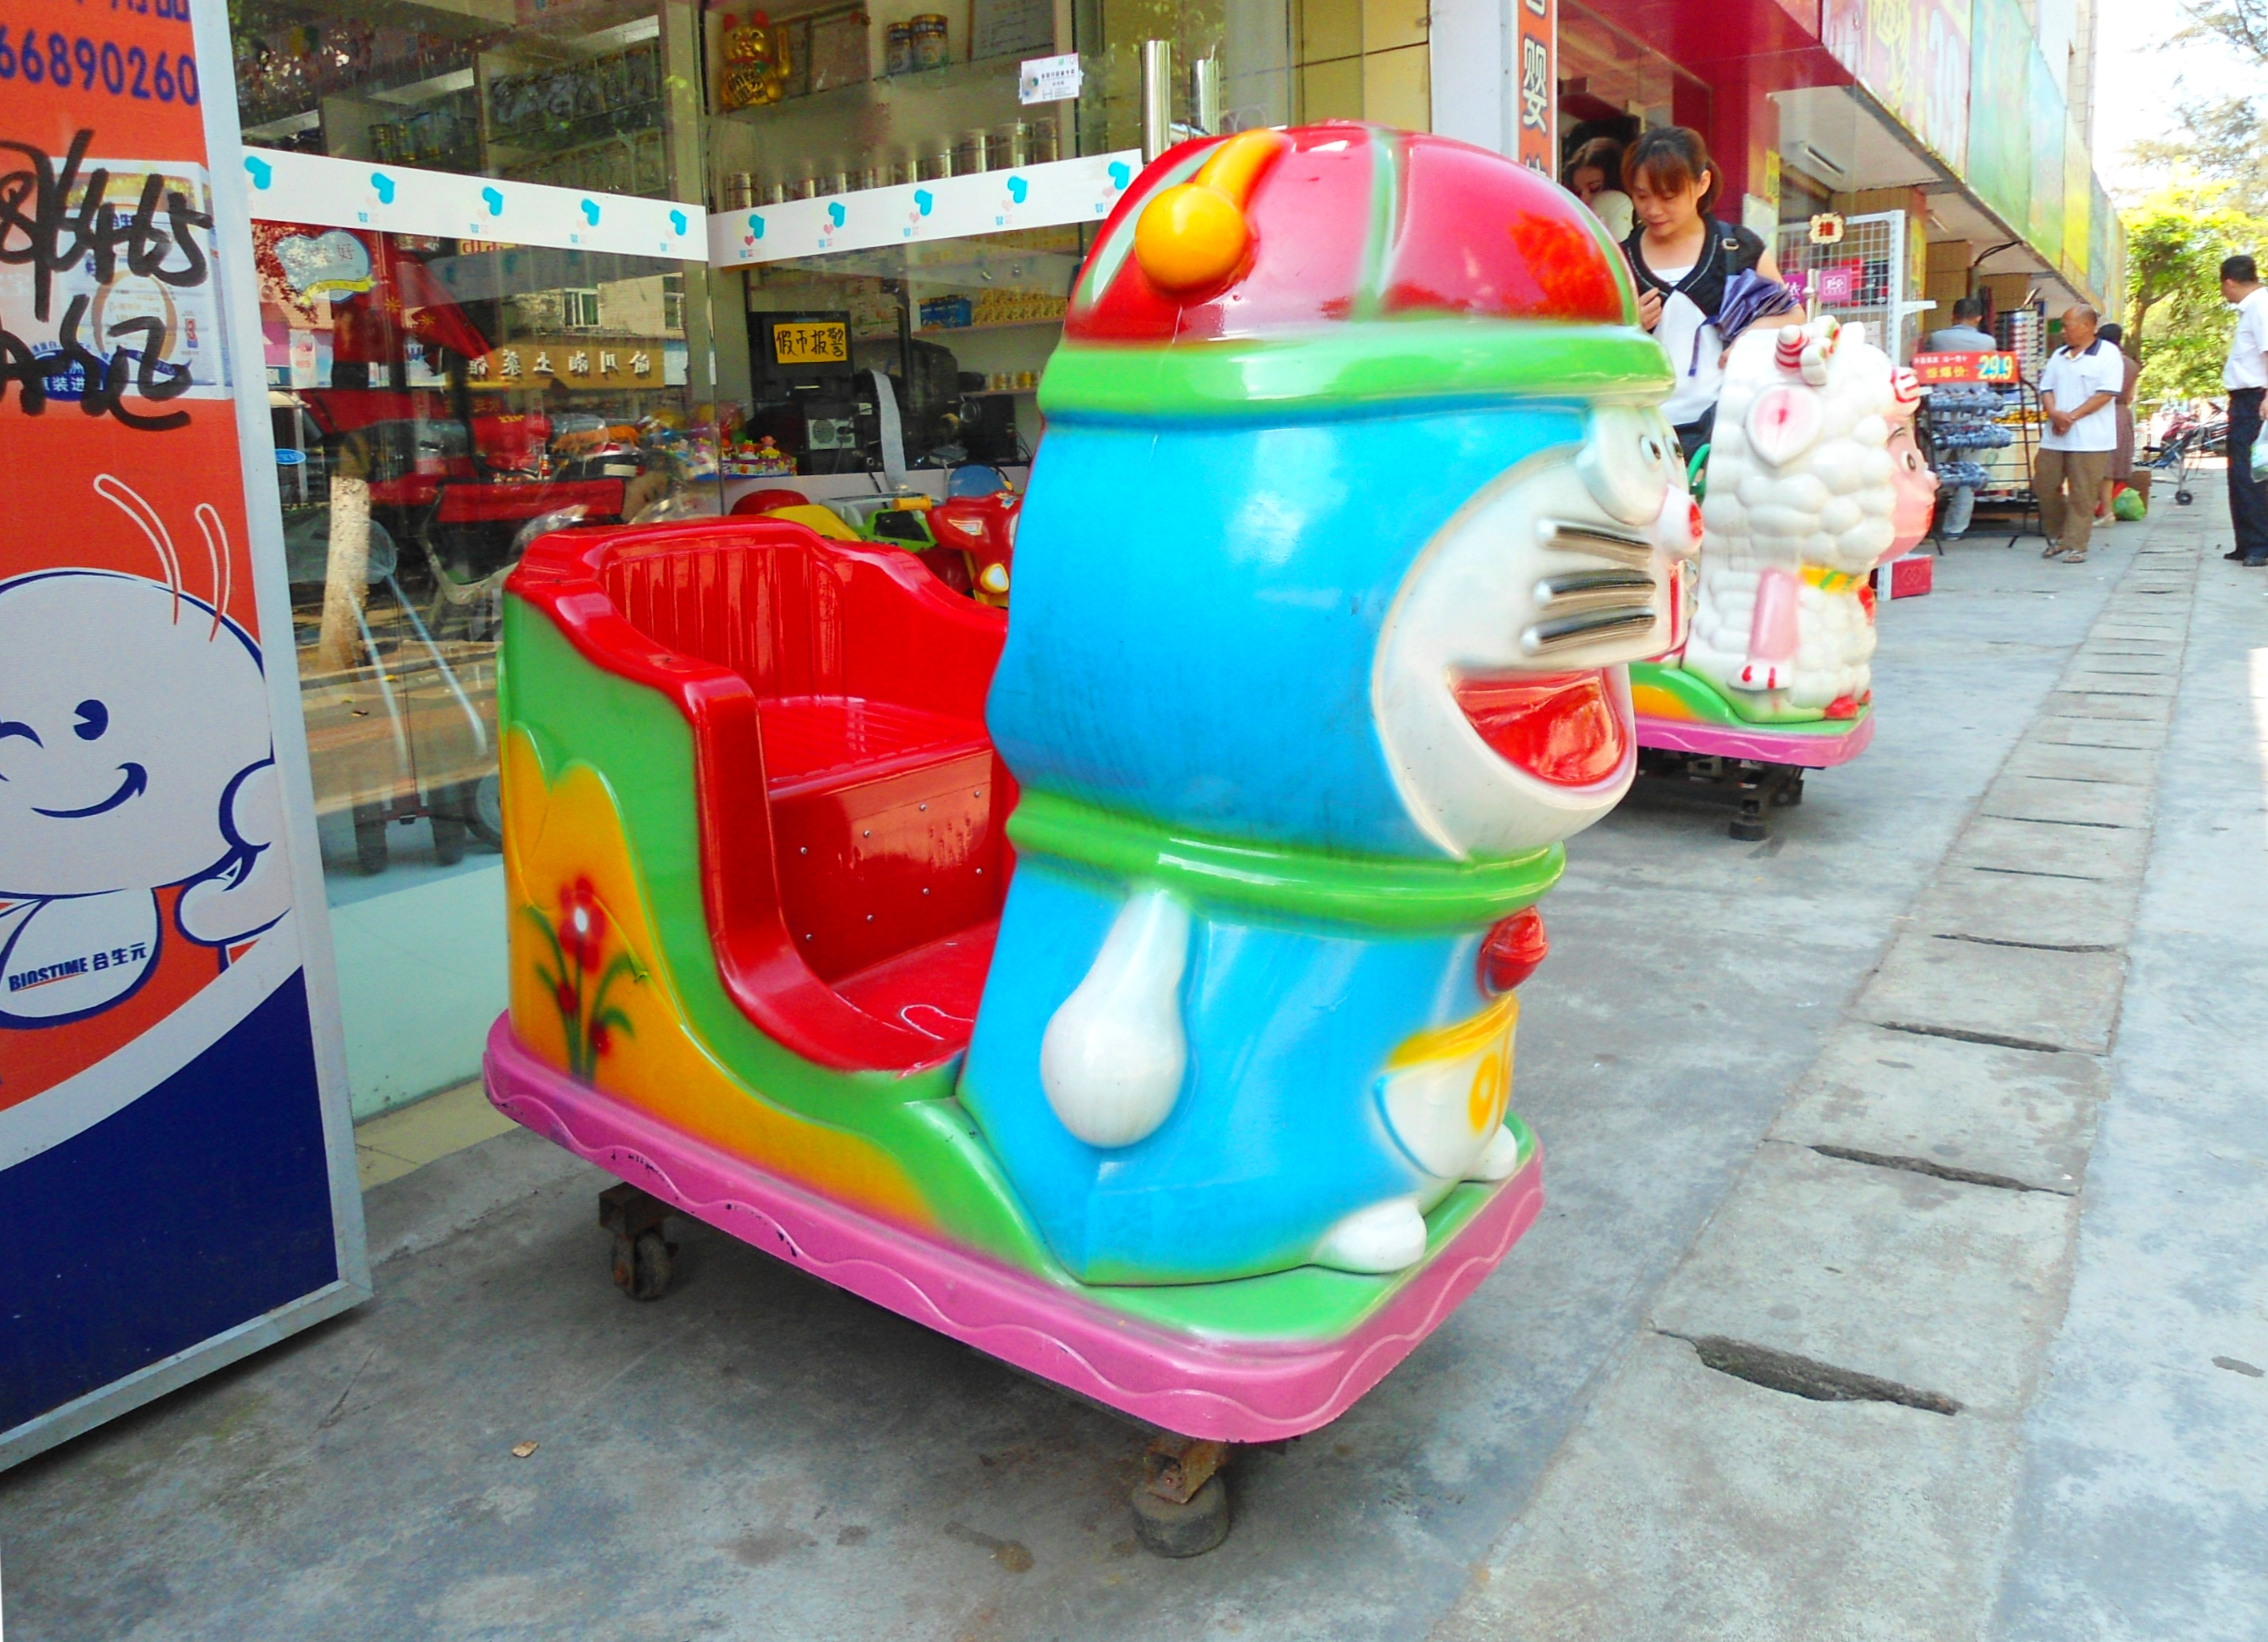 File:Kiddie ride - 01.jpg - Wikimedia Commons